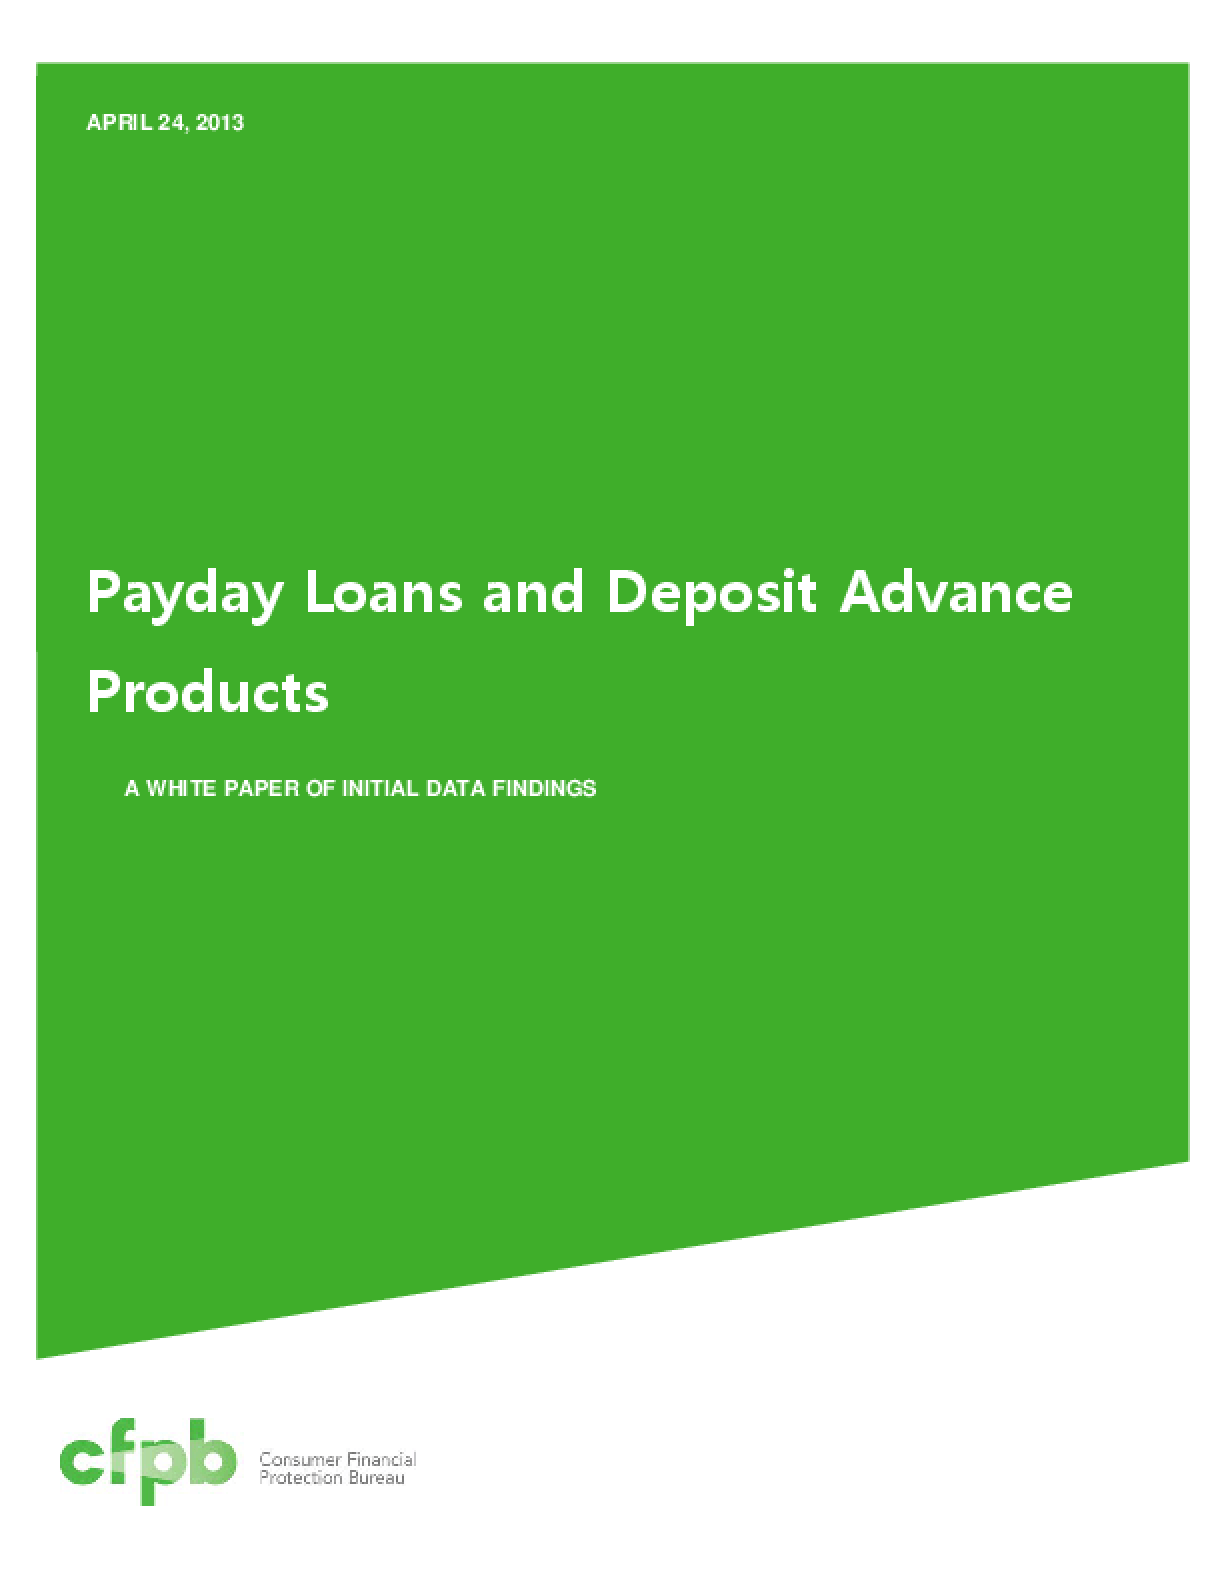 Payday Loans and Deposit Advance Products: A White Paper of Initial Data Findings